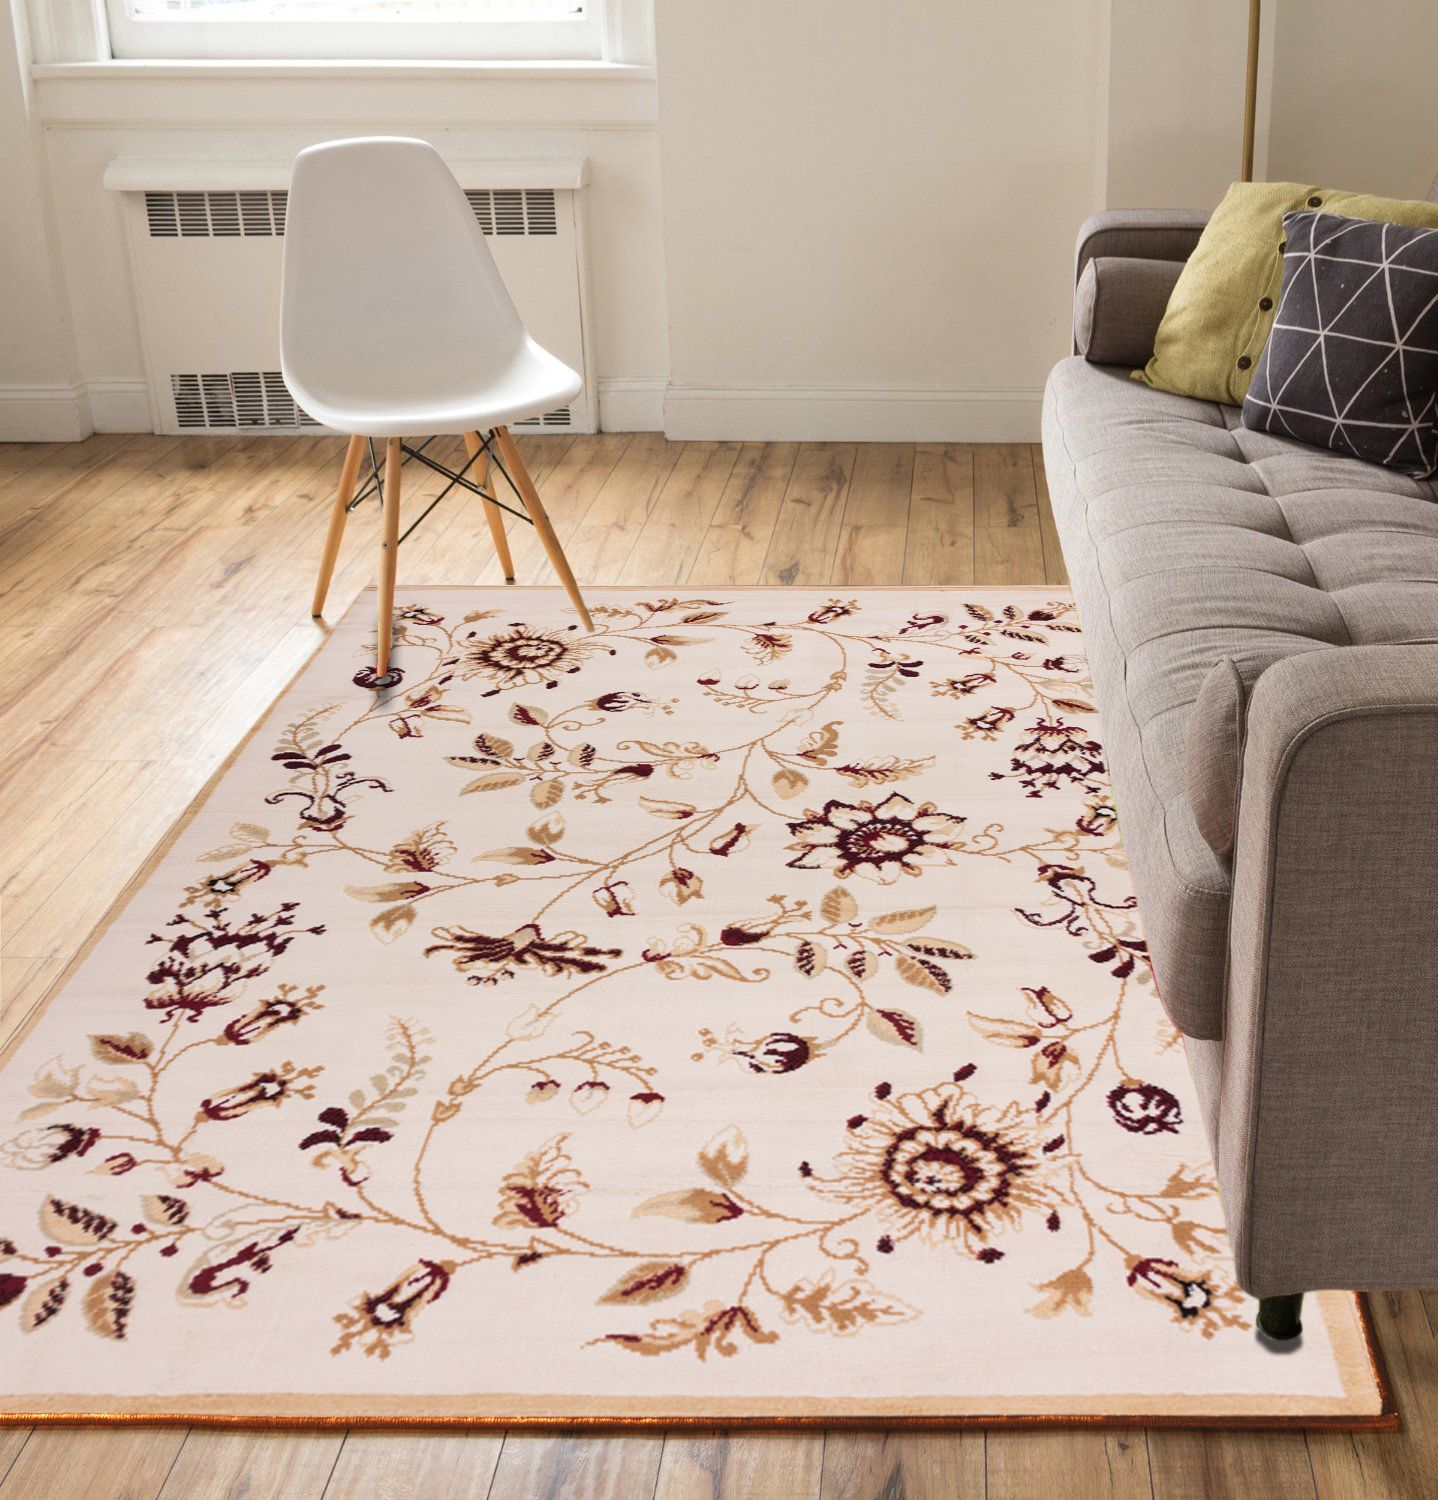 """Well Woven Flowers Ivory and Beige 3'3"""" x 5' Area Rug Carpet"""